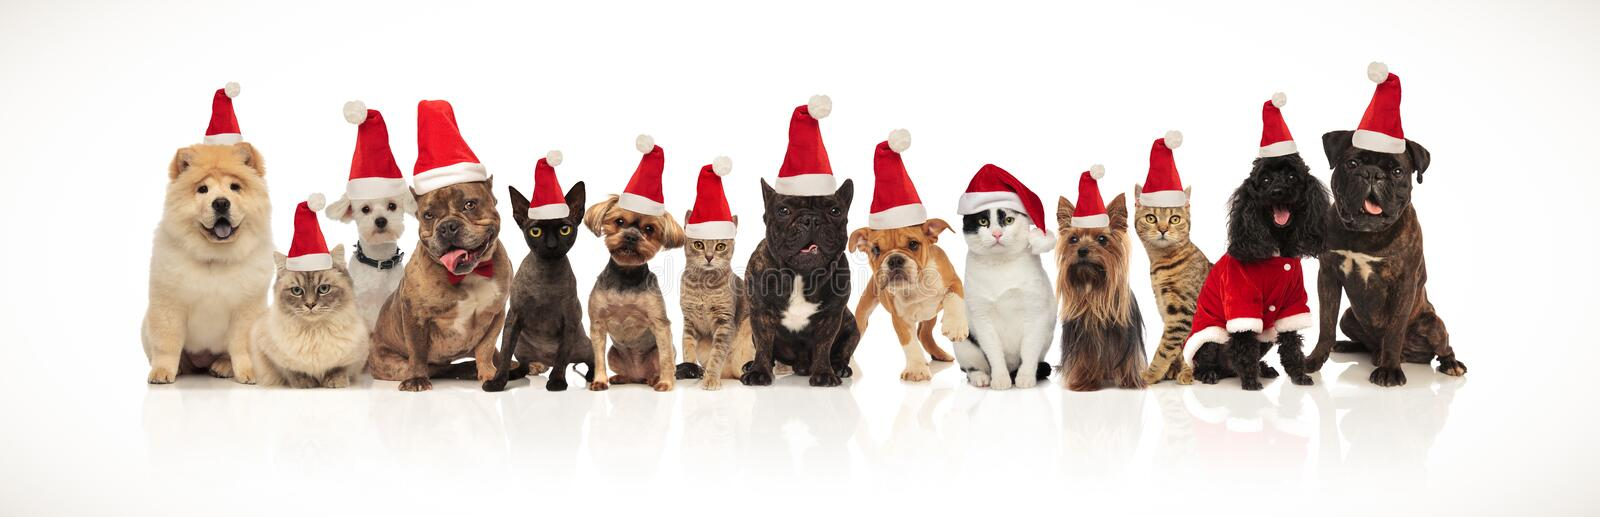 Large christmas team of many cute cats and dogs stock photography